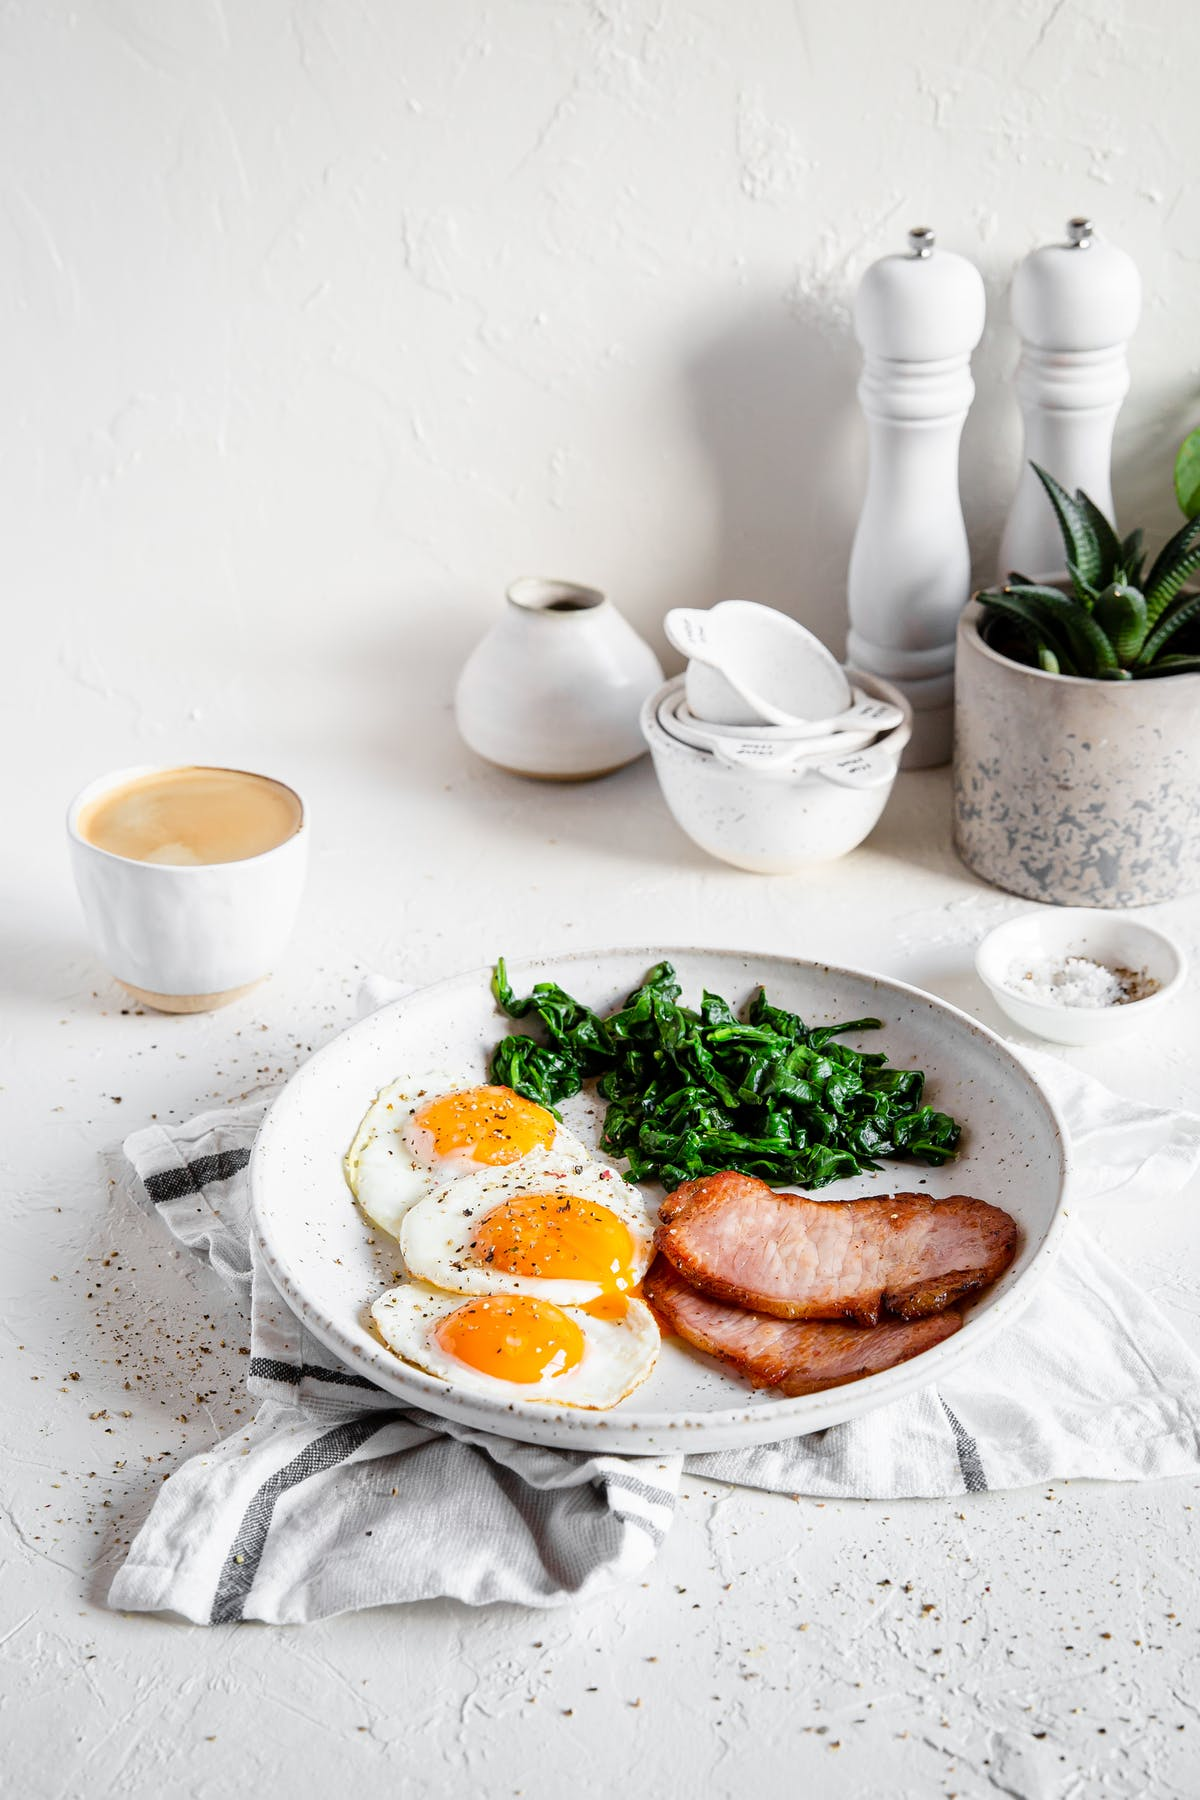 High protein breakfast with Canadian bacon, eggs, and spinach